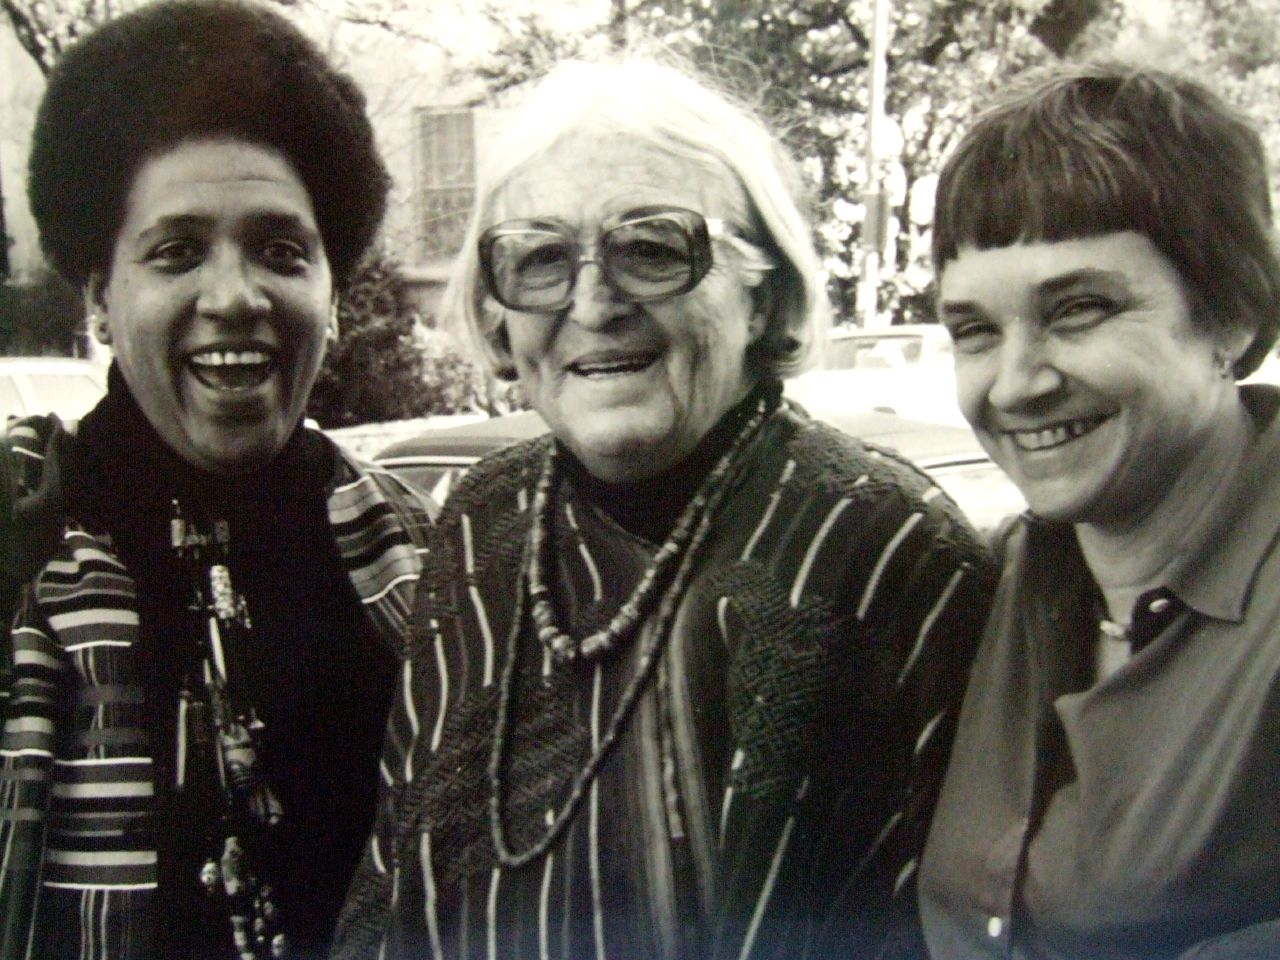 How To Combat Racial Injustice According To Audre Lorde